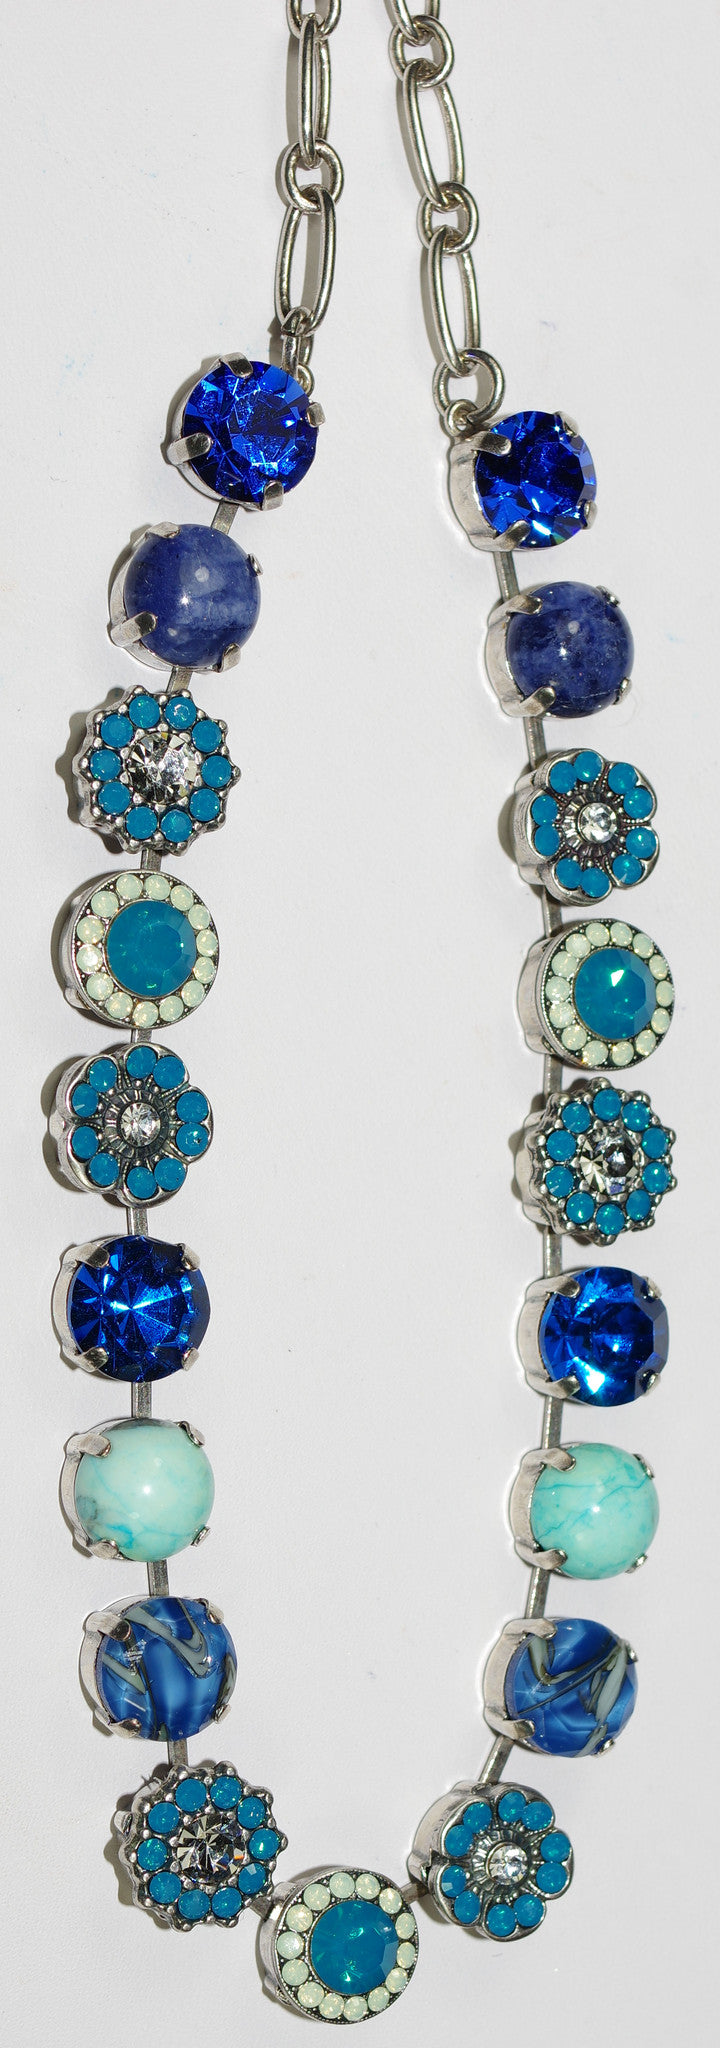 "MARIANA NECKLACE ZHANG SOPHIA: pacific opal, blue, clear stones in silver rhodium setting, 18"" adjustable chain"